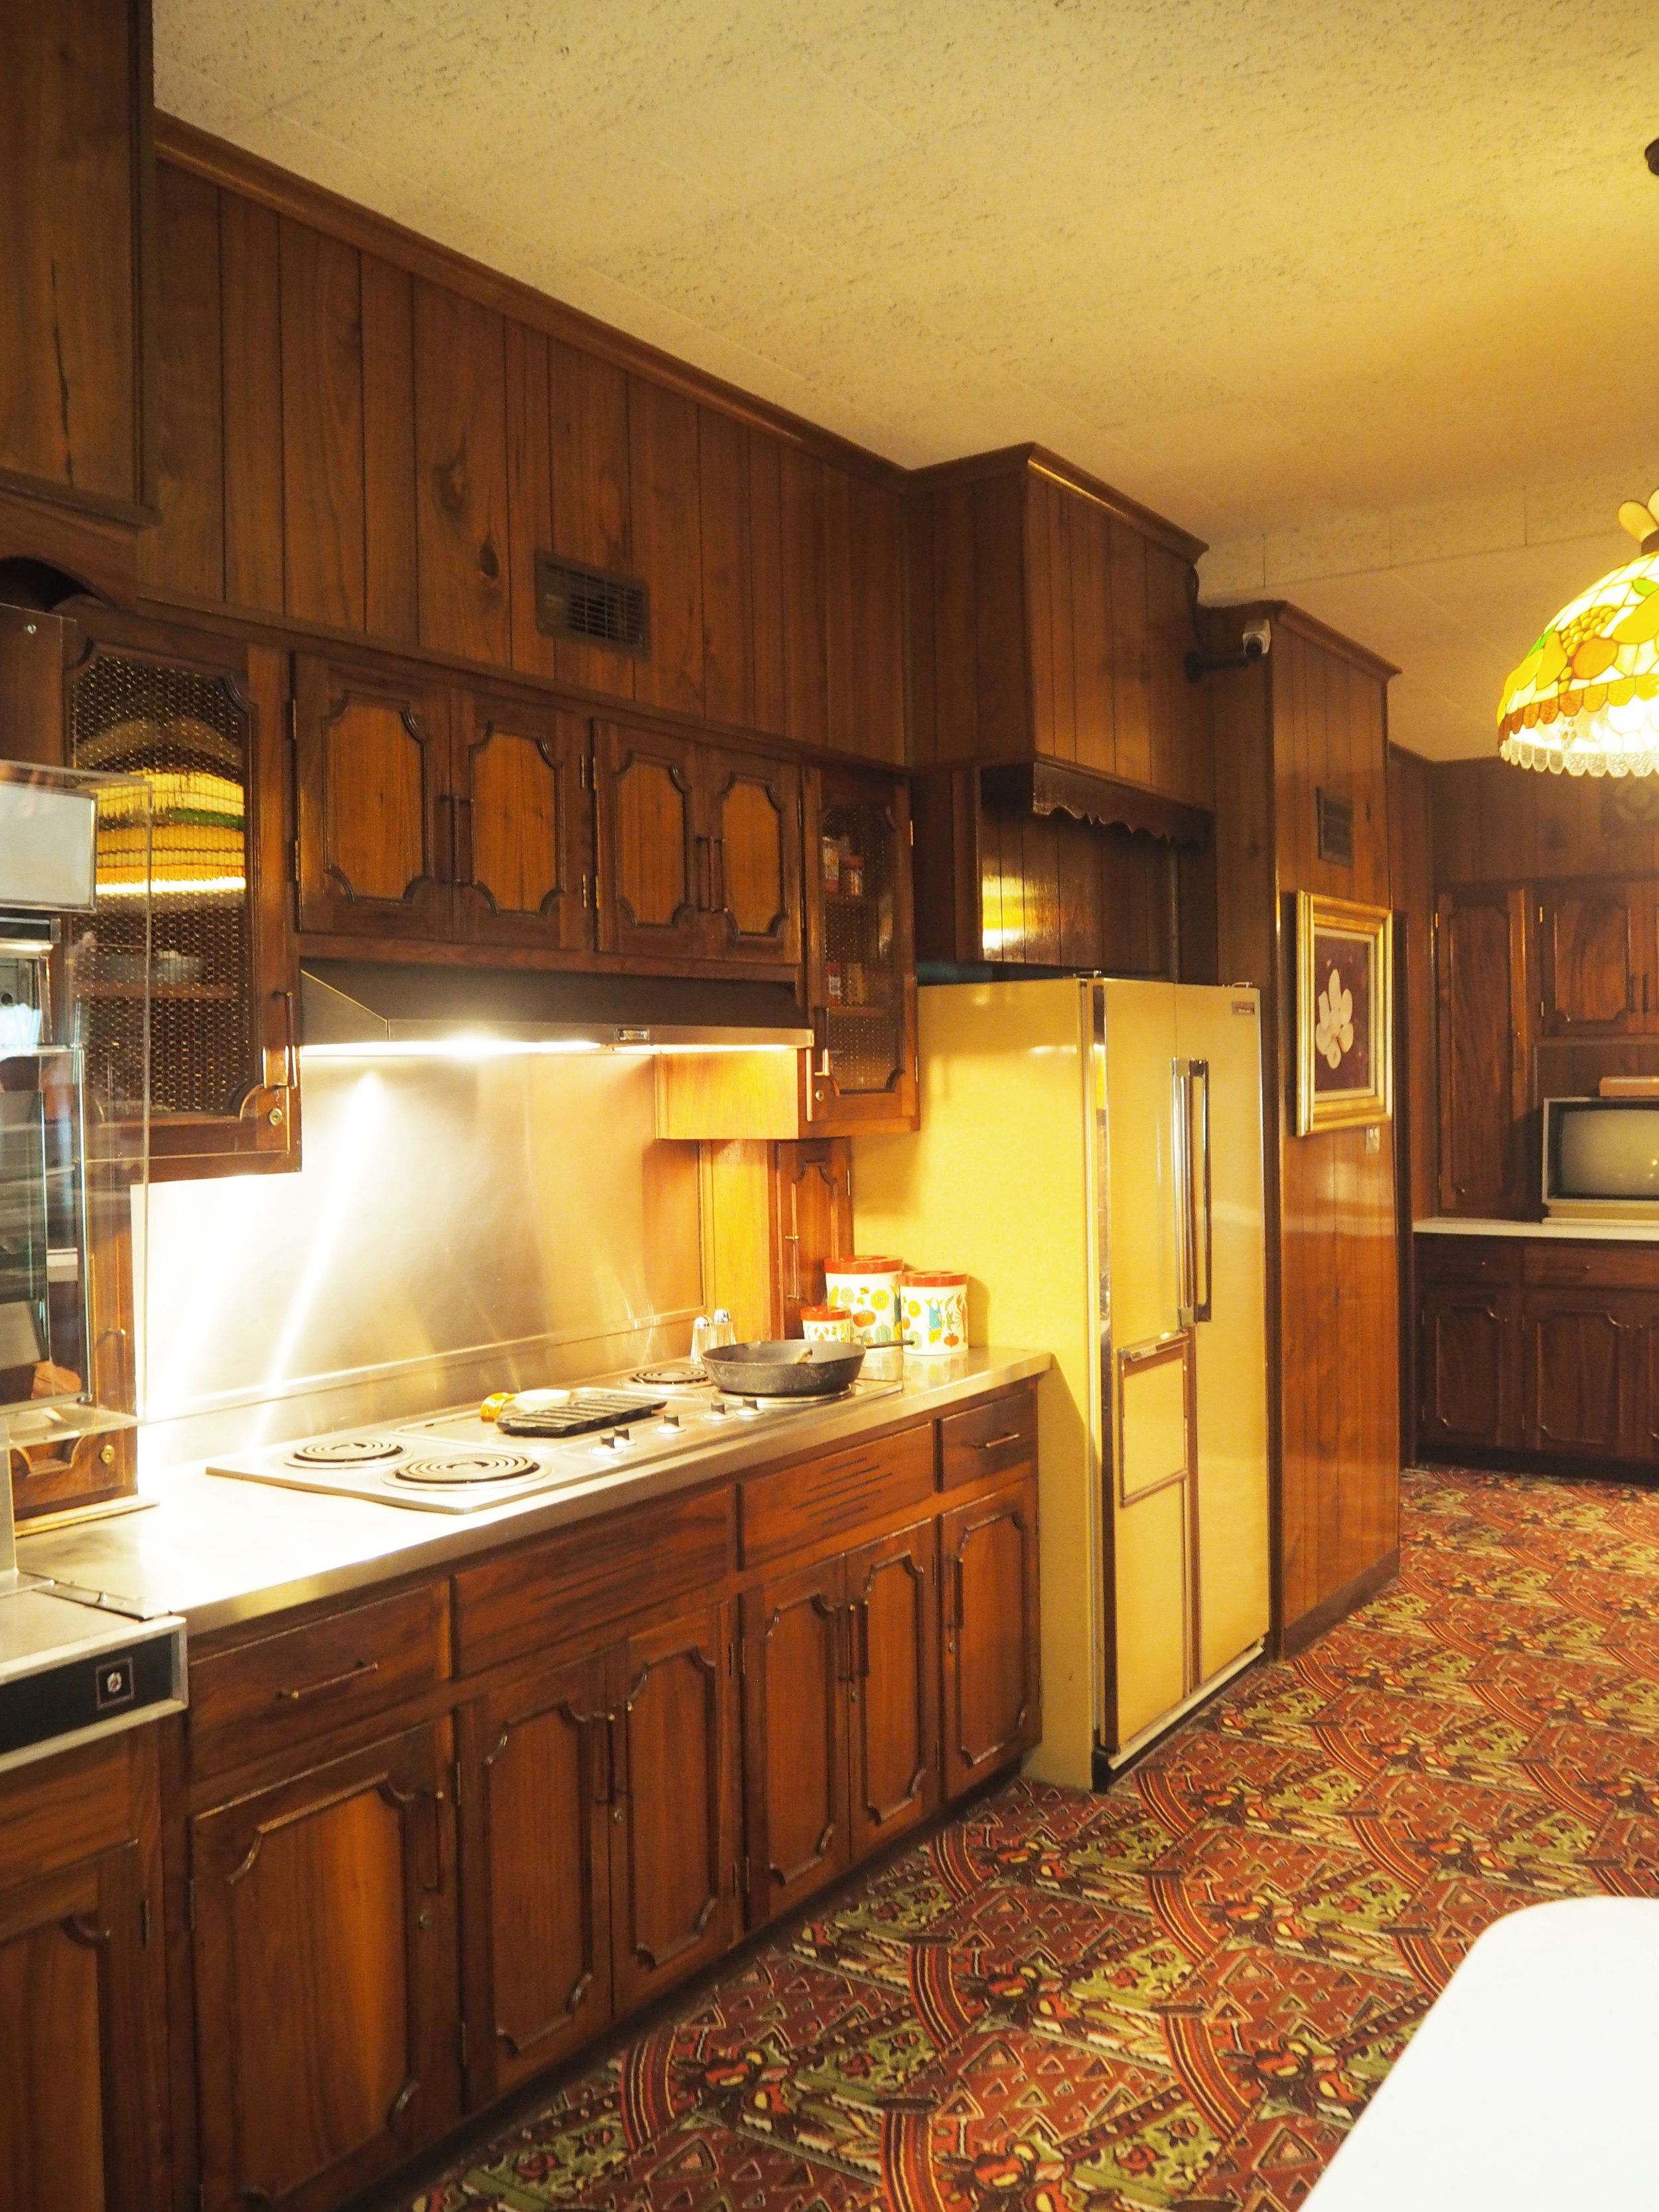 Elvis Presley's Graceland kitchen. To see more pics, click on the photo.